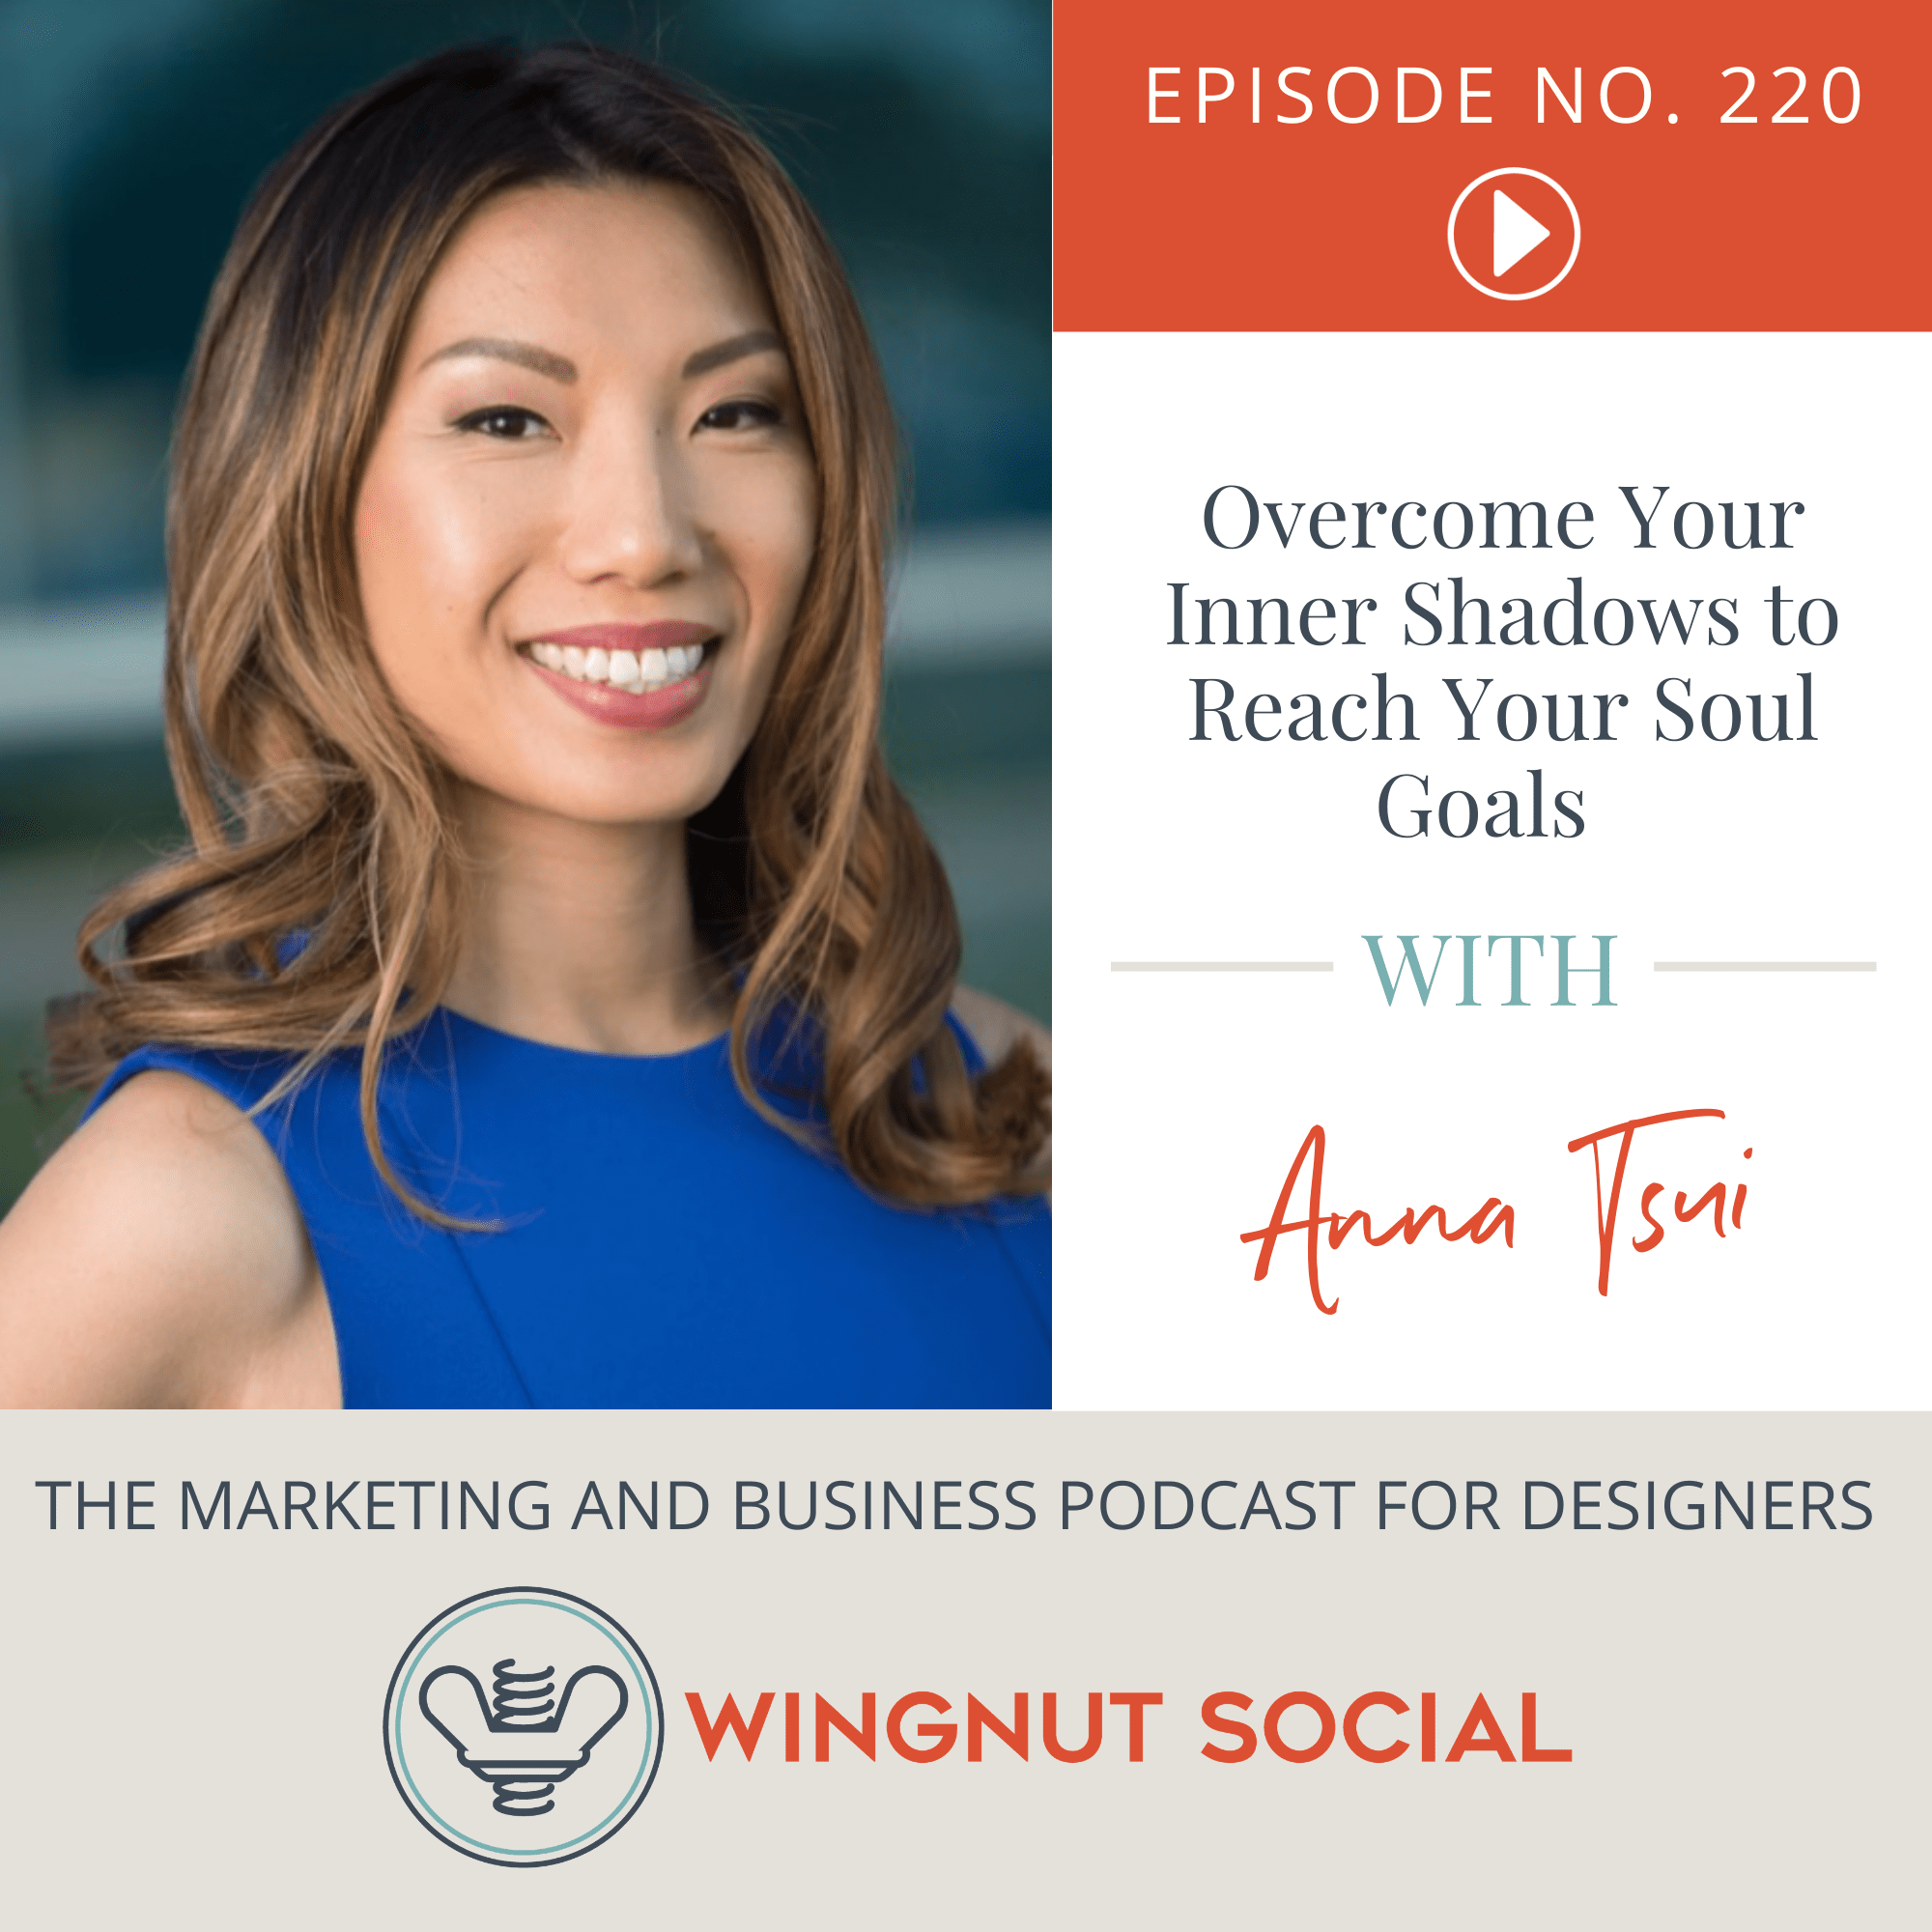 Overcome Your Inner Shadows to Reach Your Soul Goals (with Anna Tsui) - Episode 220